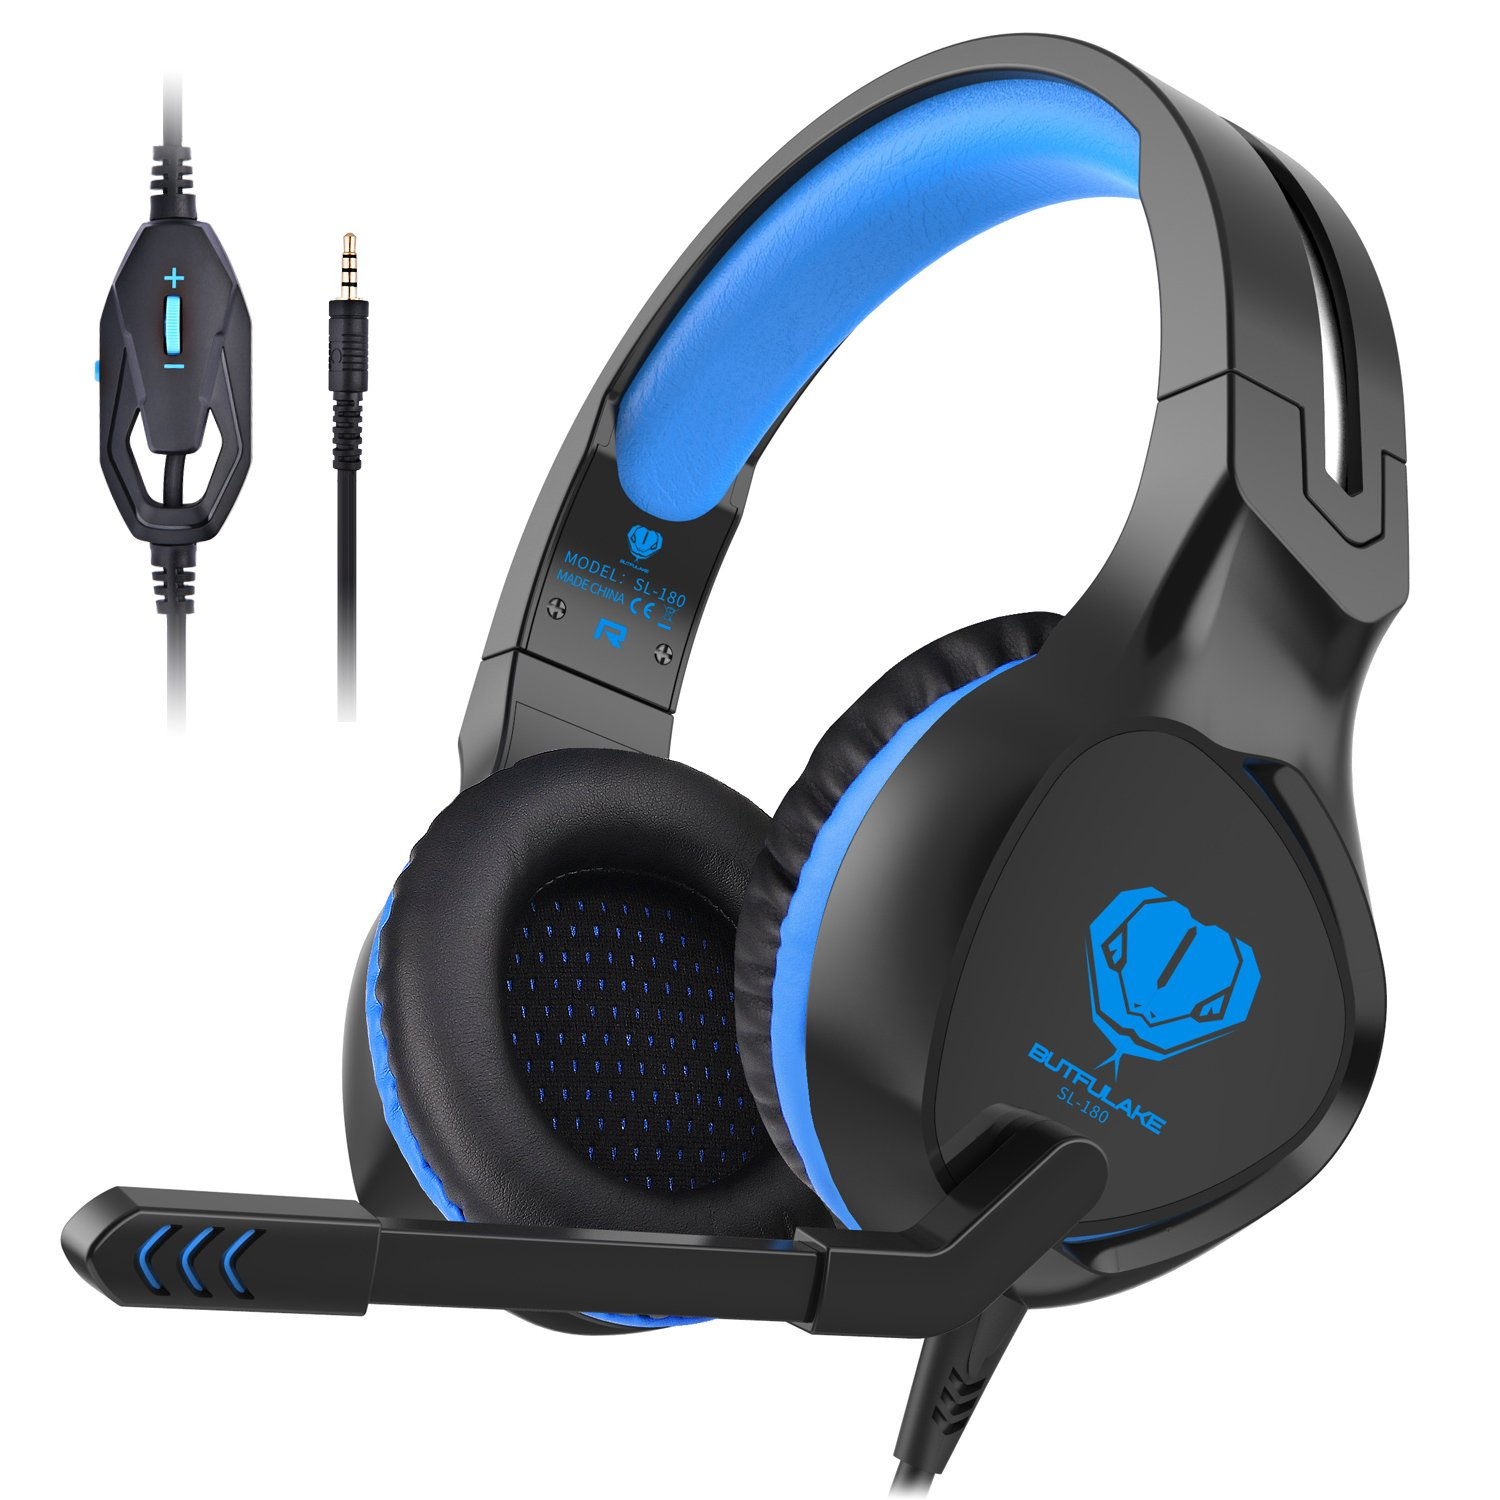 Gaming Headset, Xbox One headset Noice cancelling Headphones with microphones Over ear Gaming headset for PS4, Nintendo Switch, Tablet, PC, Laptop, Mobile Phone